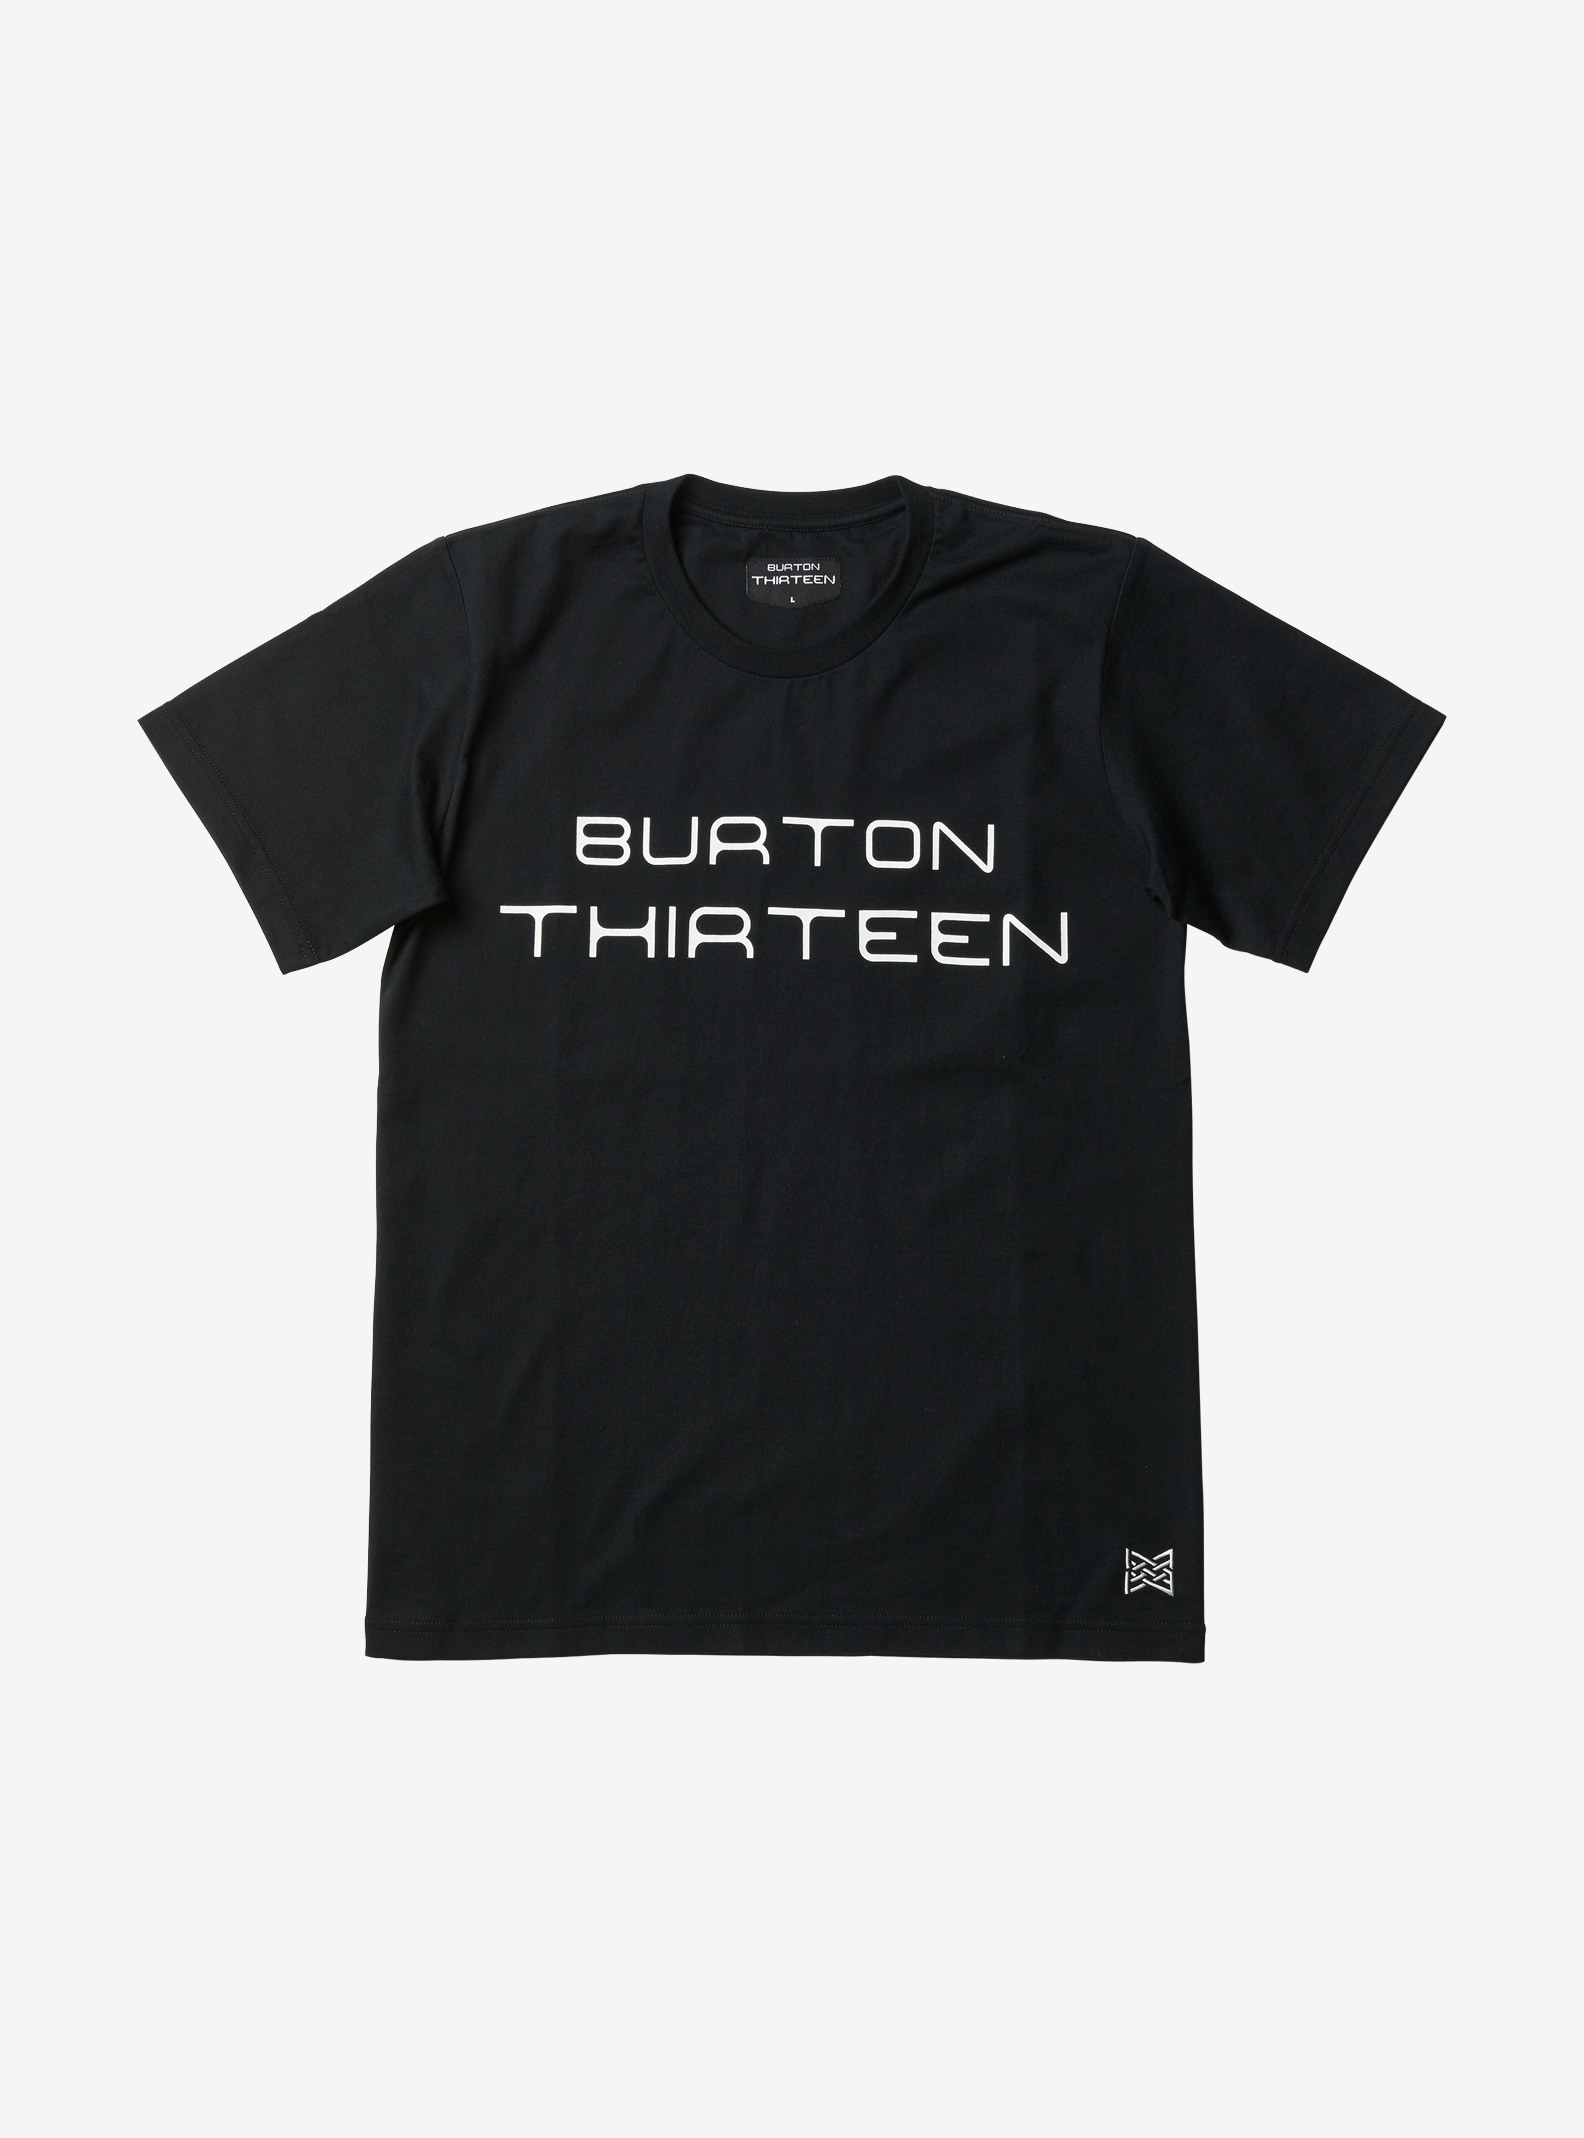 Burton THIRTEEN Thaumas Short Sleeve T Shirt shown in Black